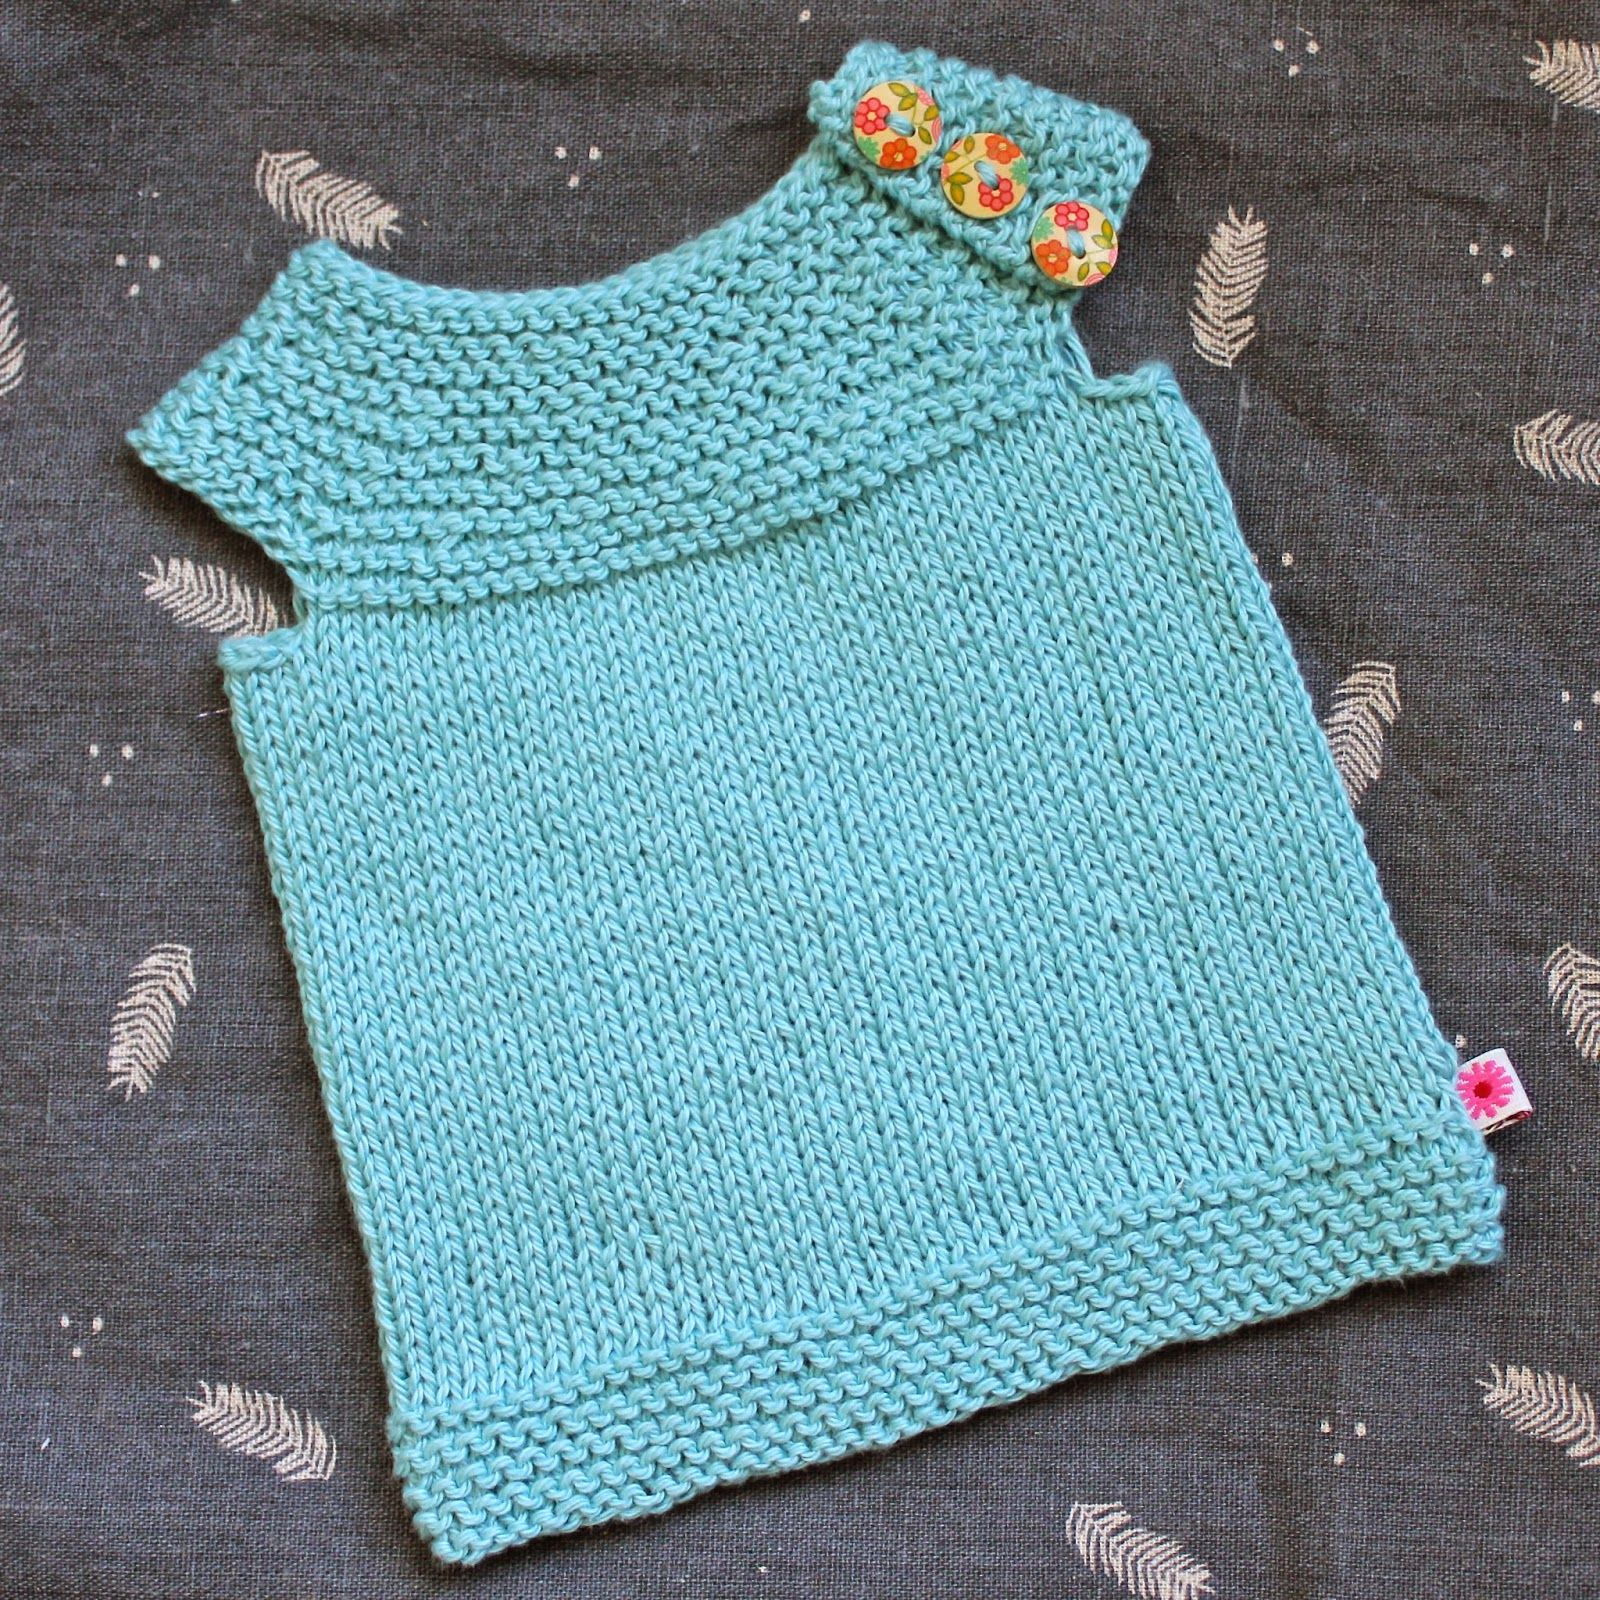 NOTHING TOO FANCY: For a wee one | yarn | Pinterest | Baby vest ...